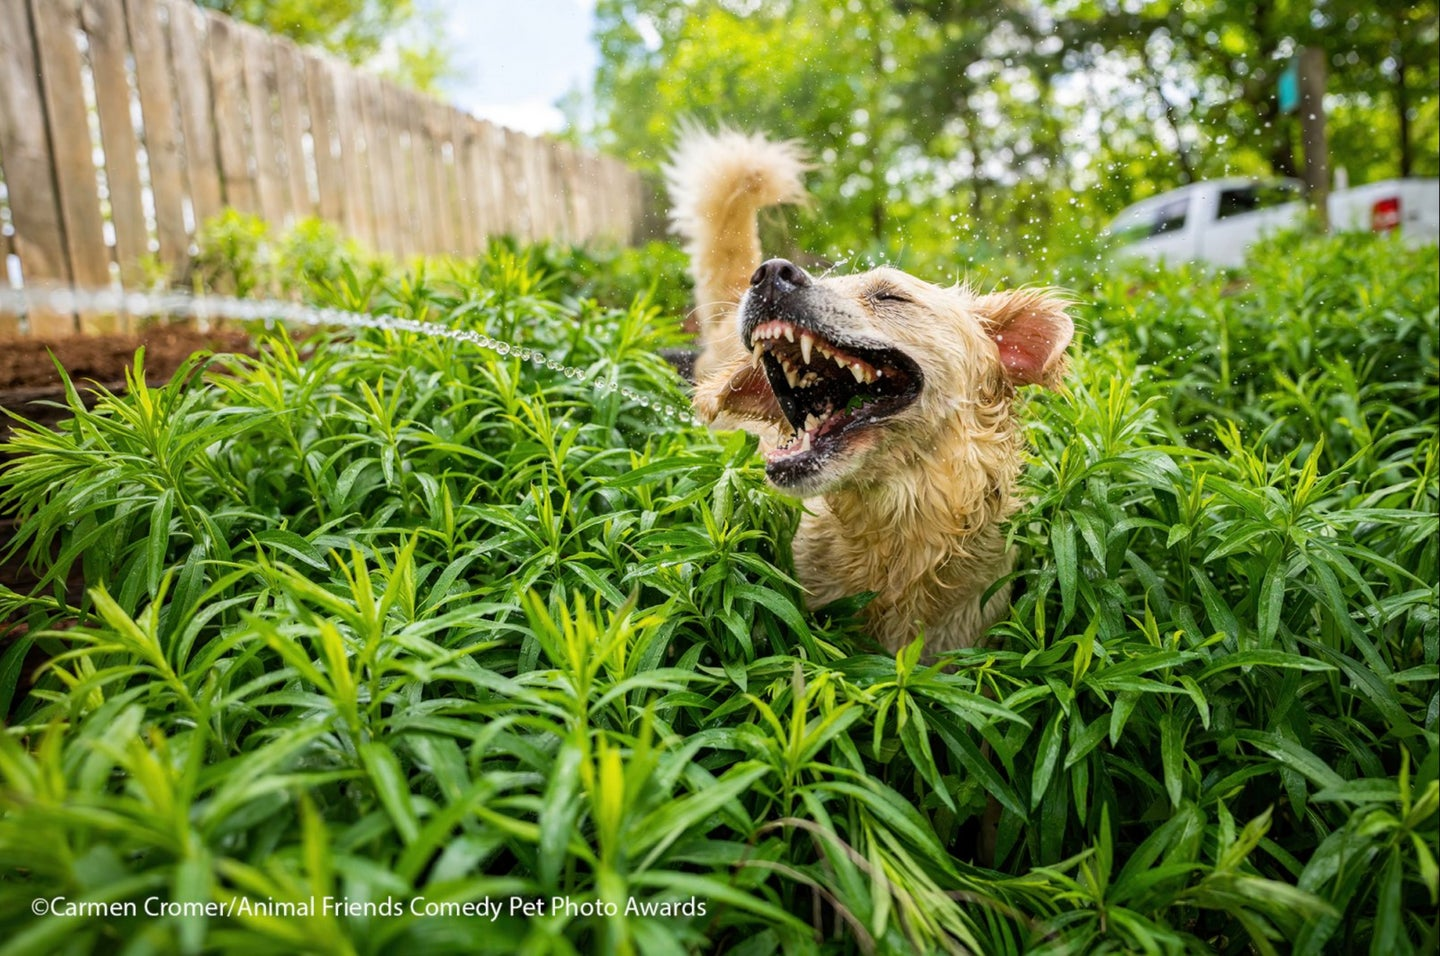 An entry from the 2021 Animal Friends Comedy Pet Photo Awards